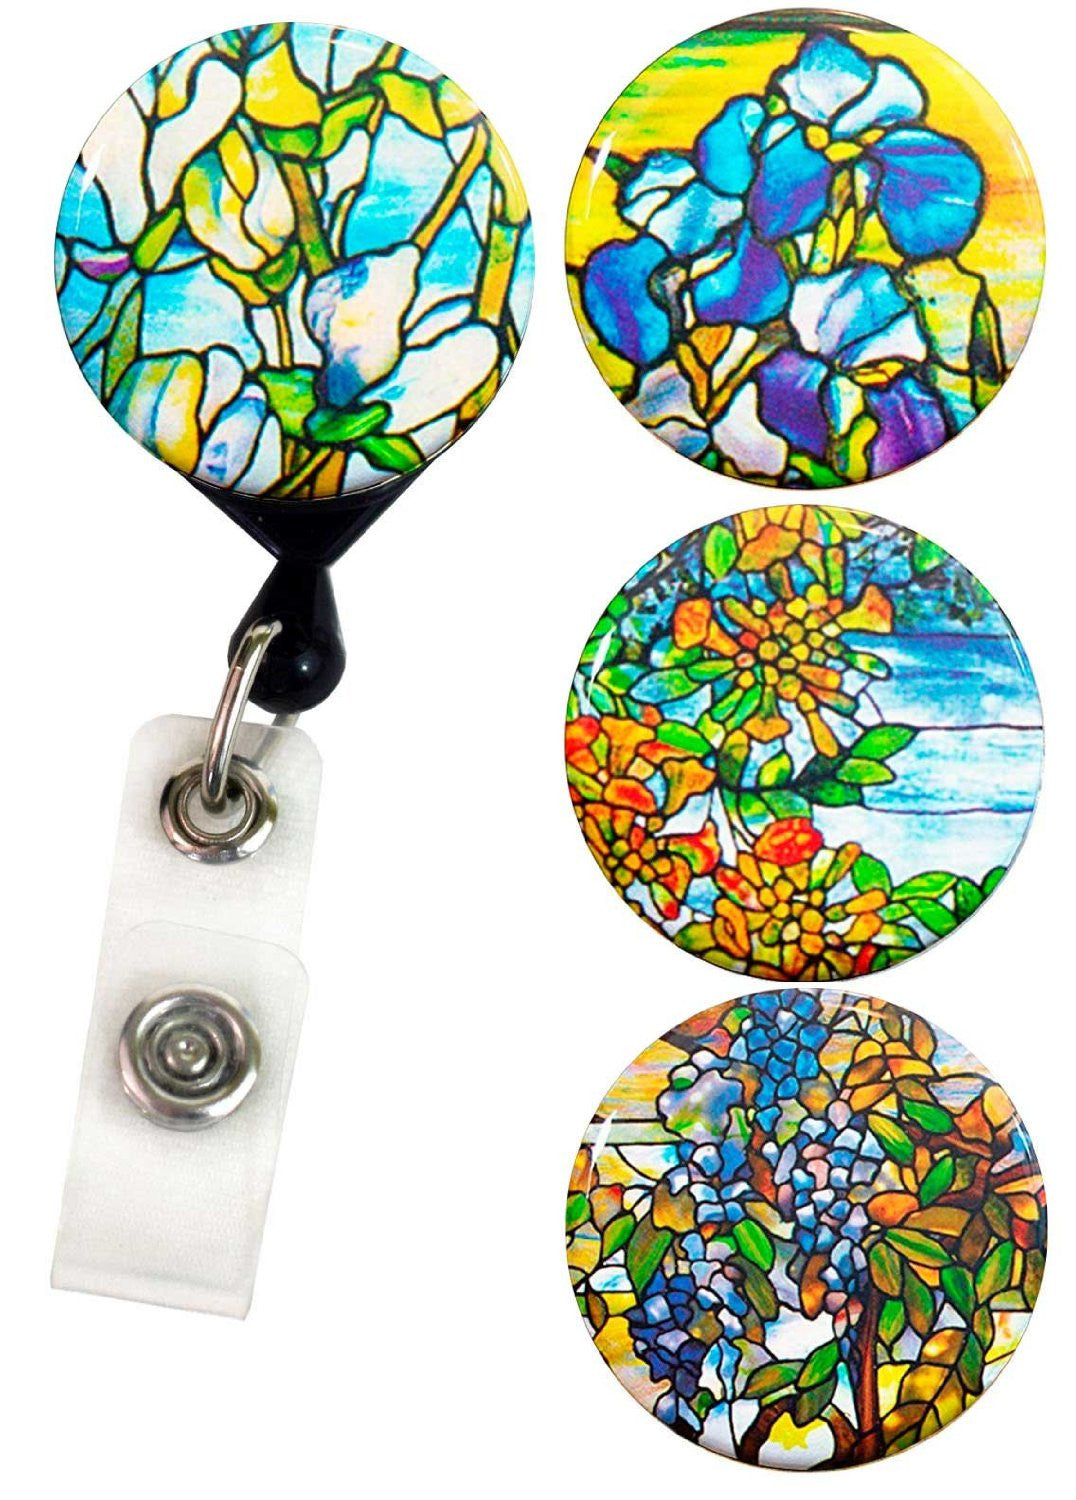 Buttonsmith® Louis Comfort Tiffany Magnolia Tinker Reel® Badge Reel – Made in USA